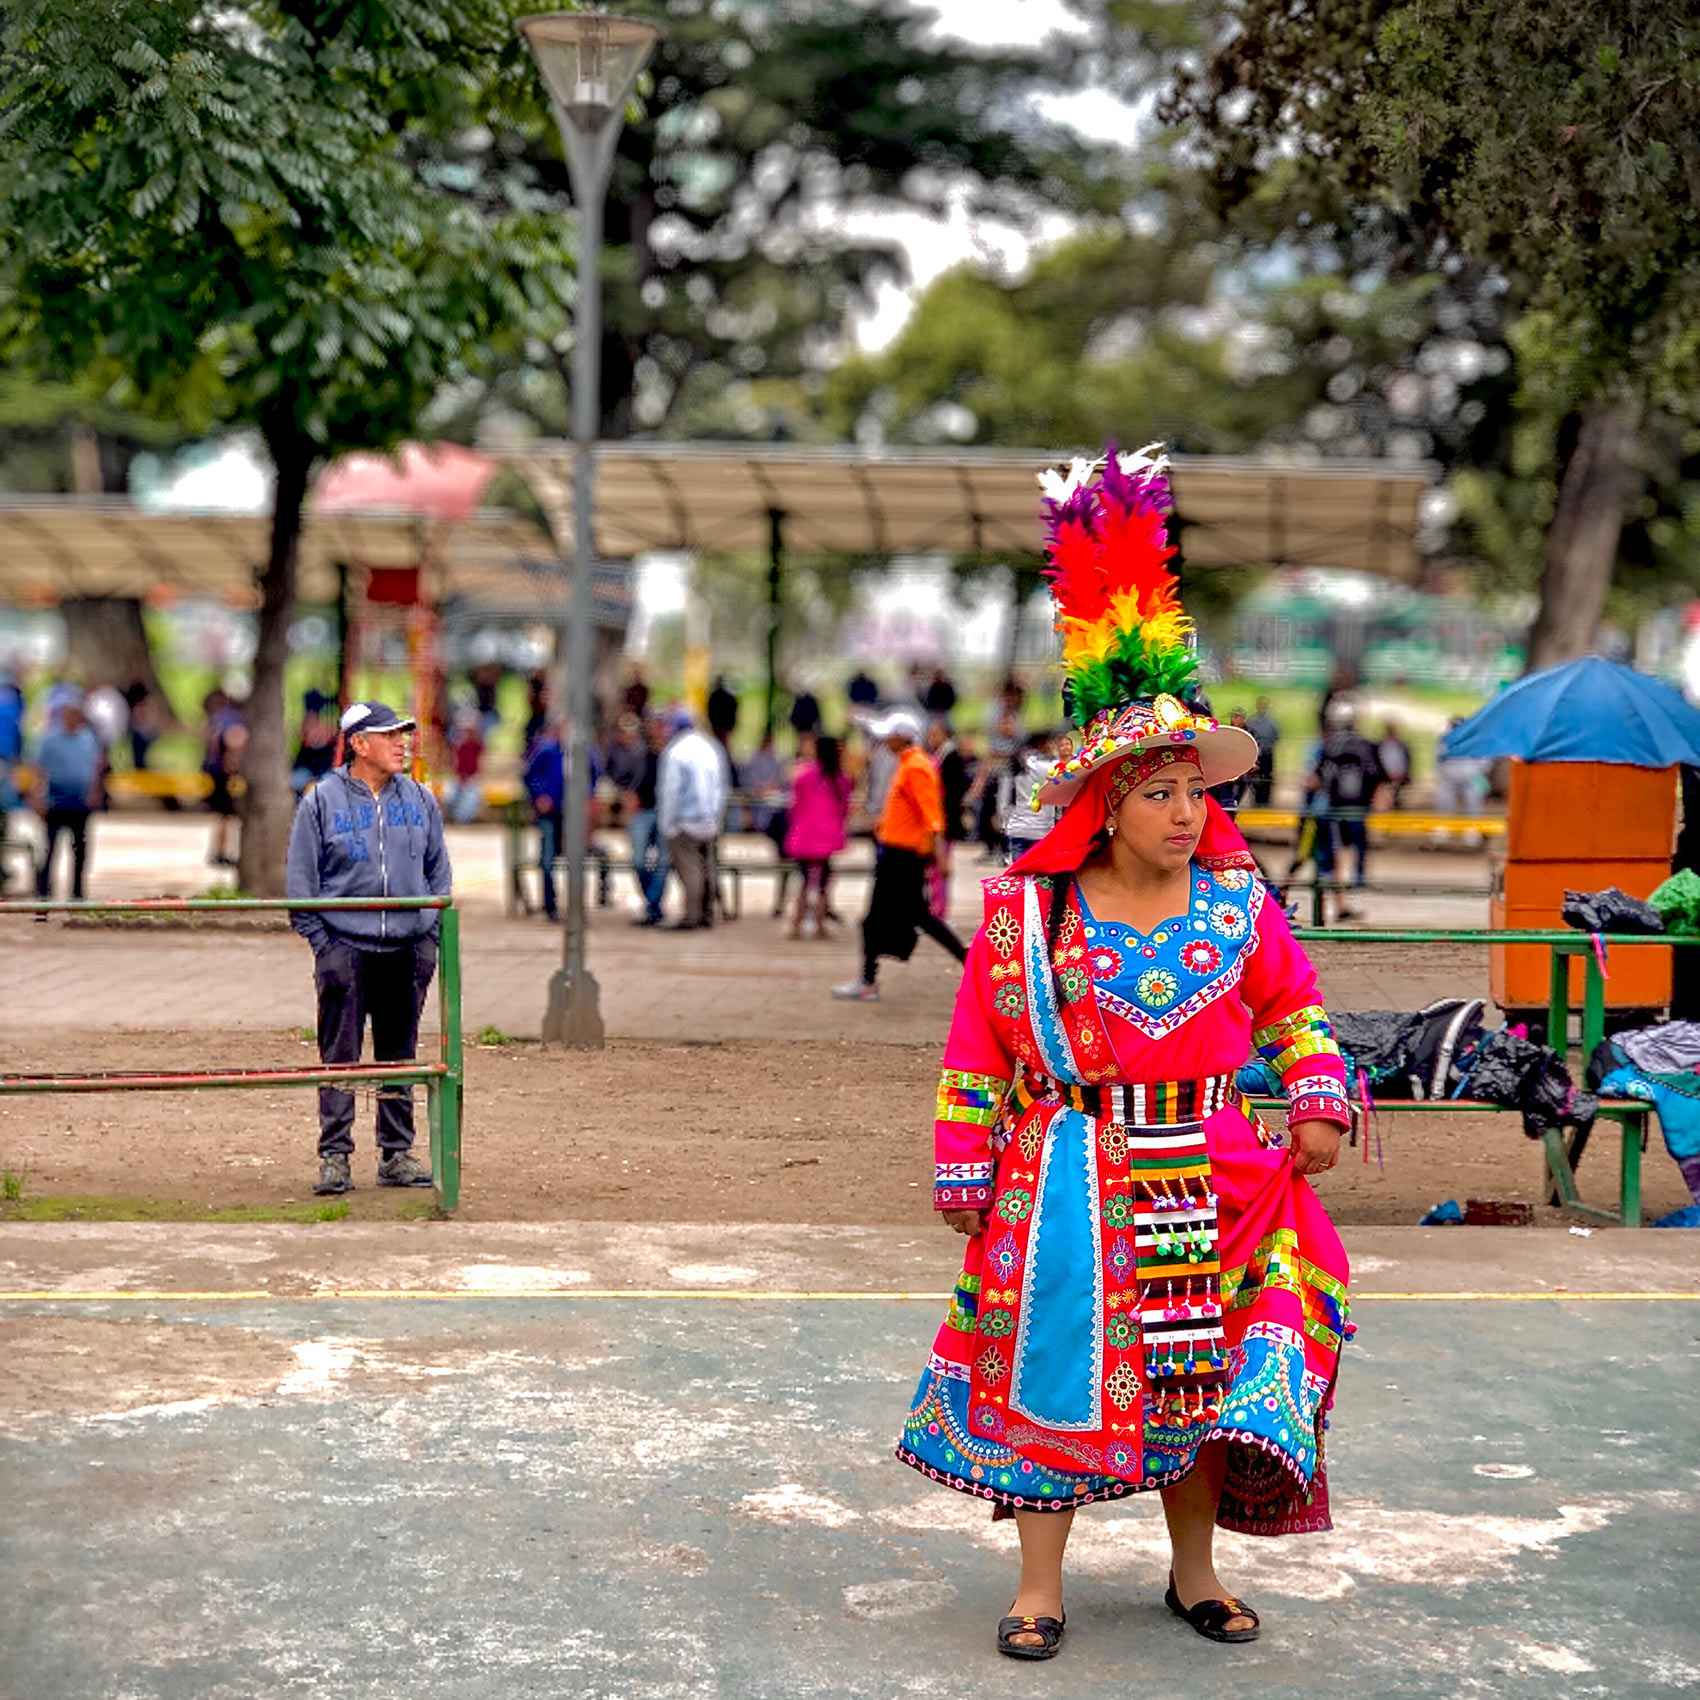 a-mayan-woman-in-traditional-dress-in-a-park-in-quito-ecuador